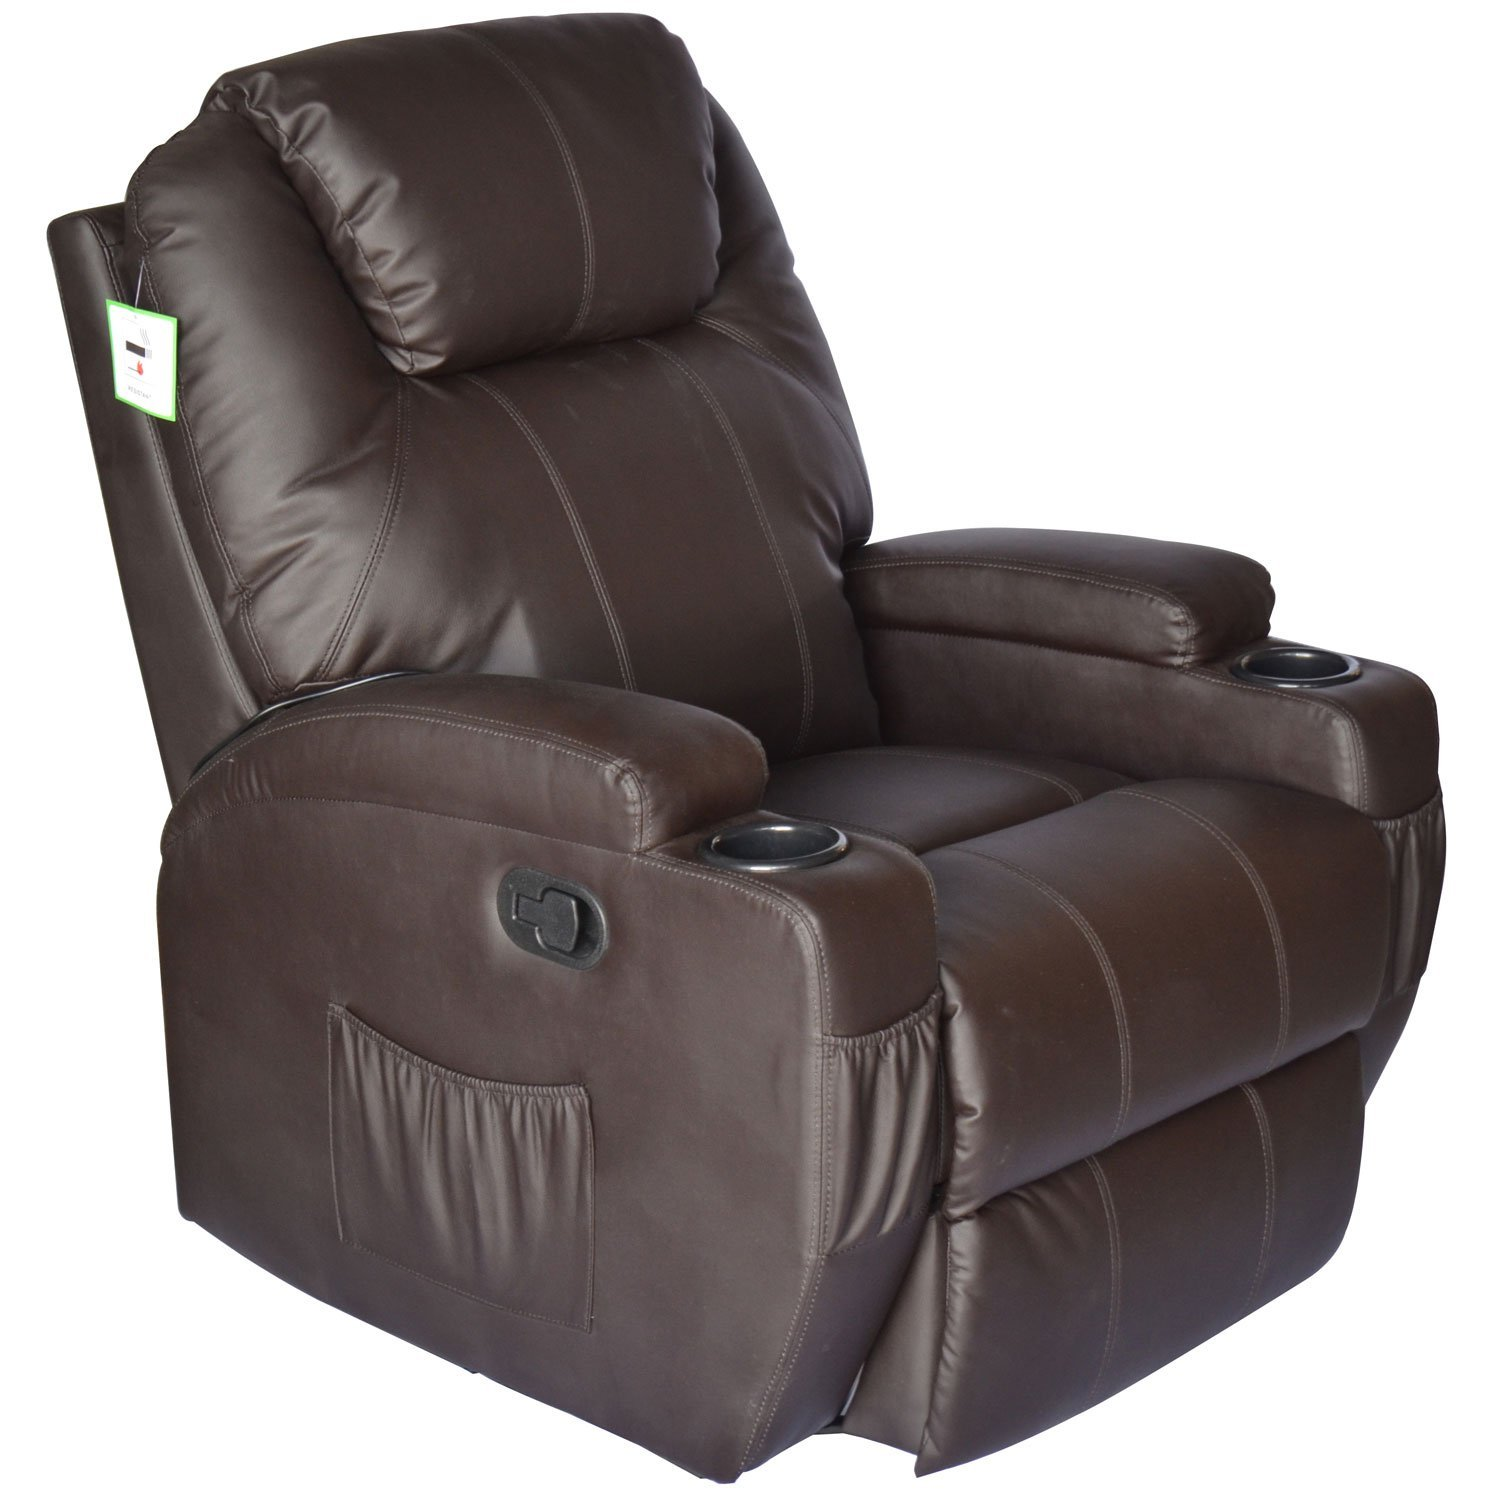 HomCom-Deluxe-Heated-Vibrating-PU-Leather-Massage-Recliner-Chair-View3